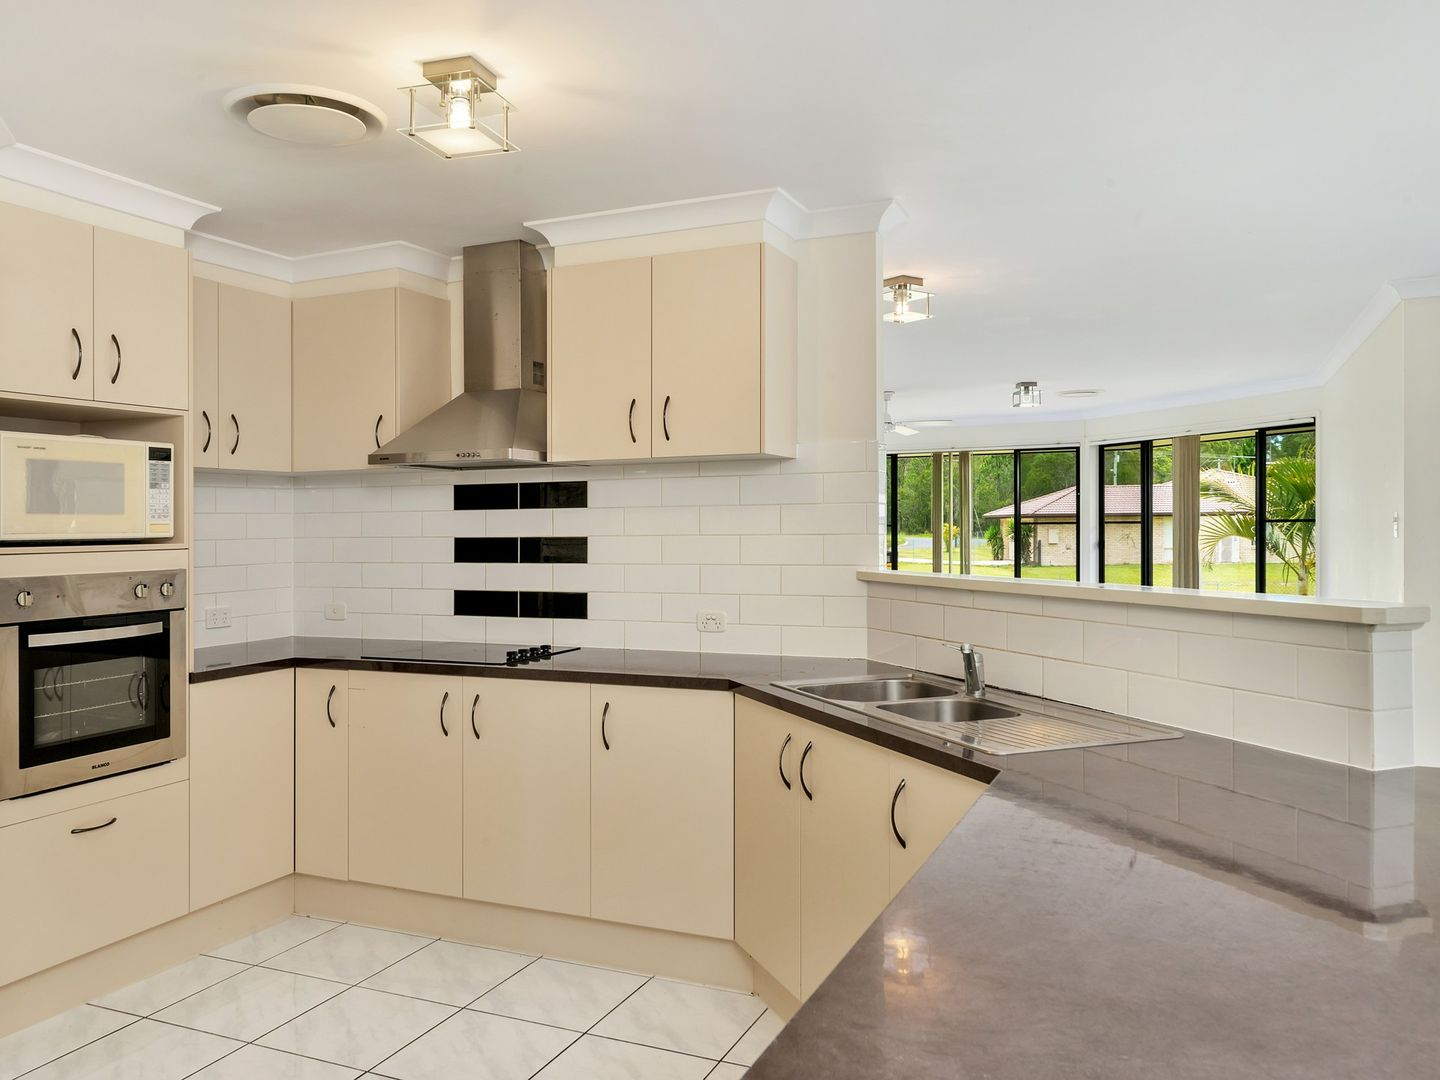 7-9 Testa Court, Caboolture QLD 4510, Image 1